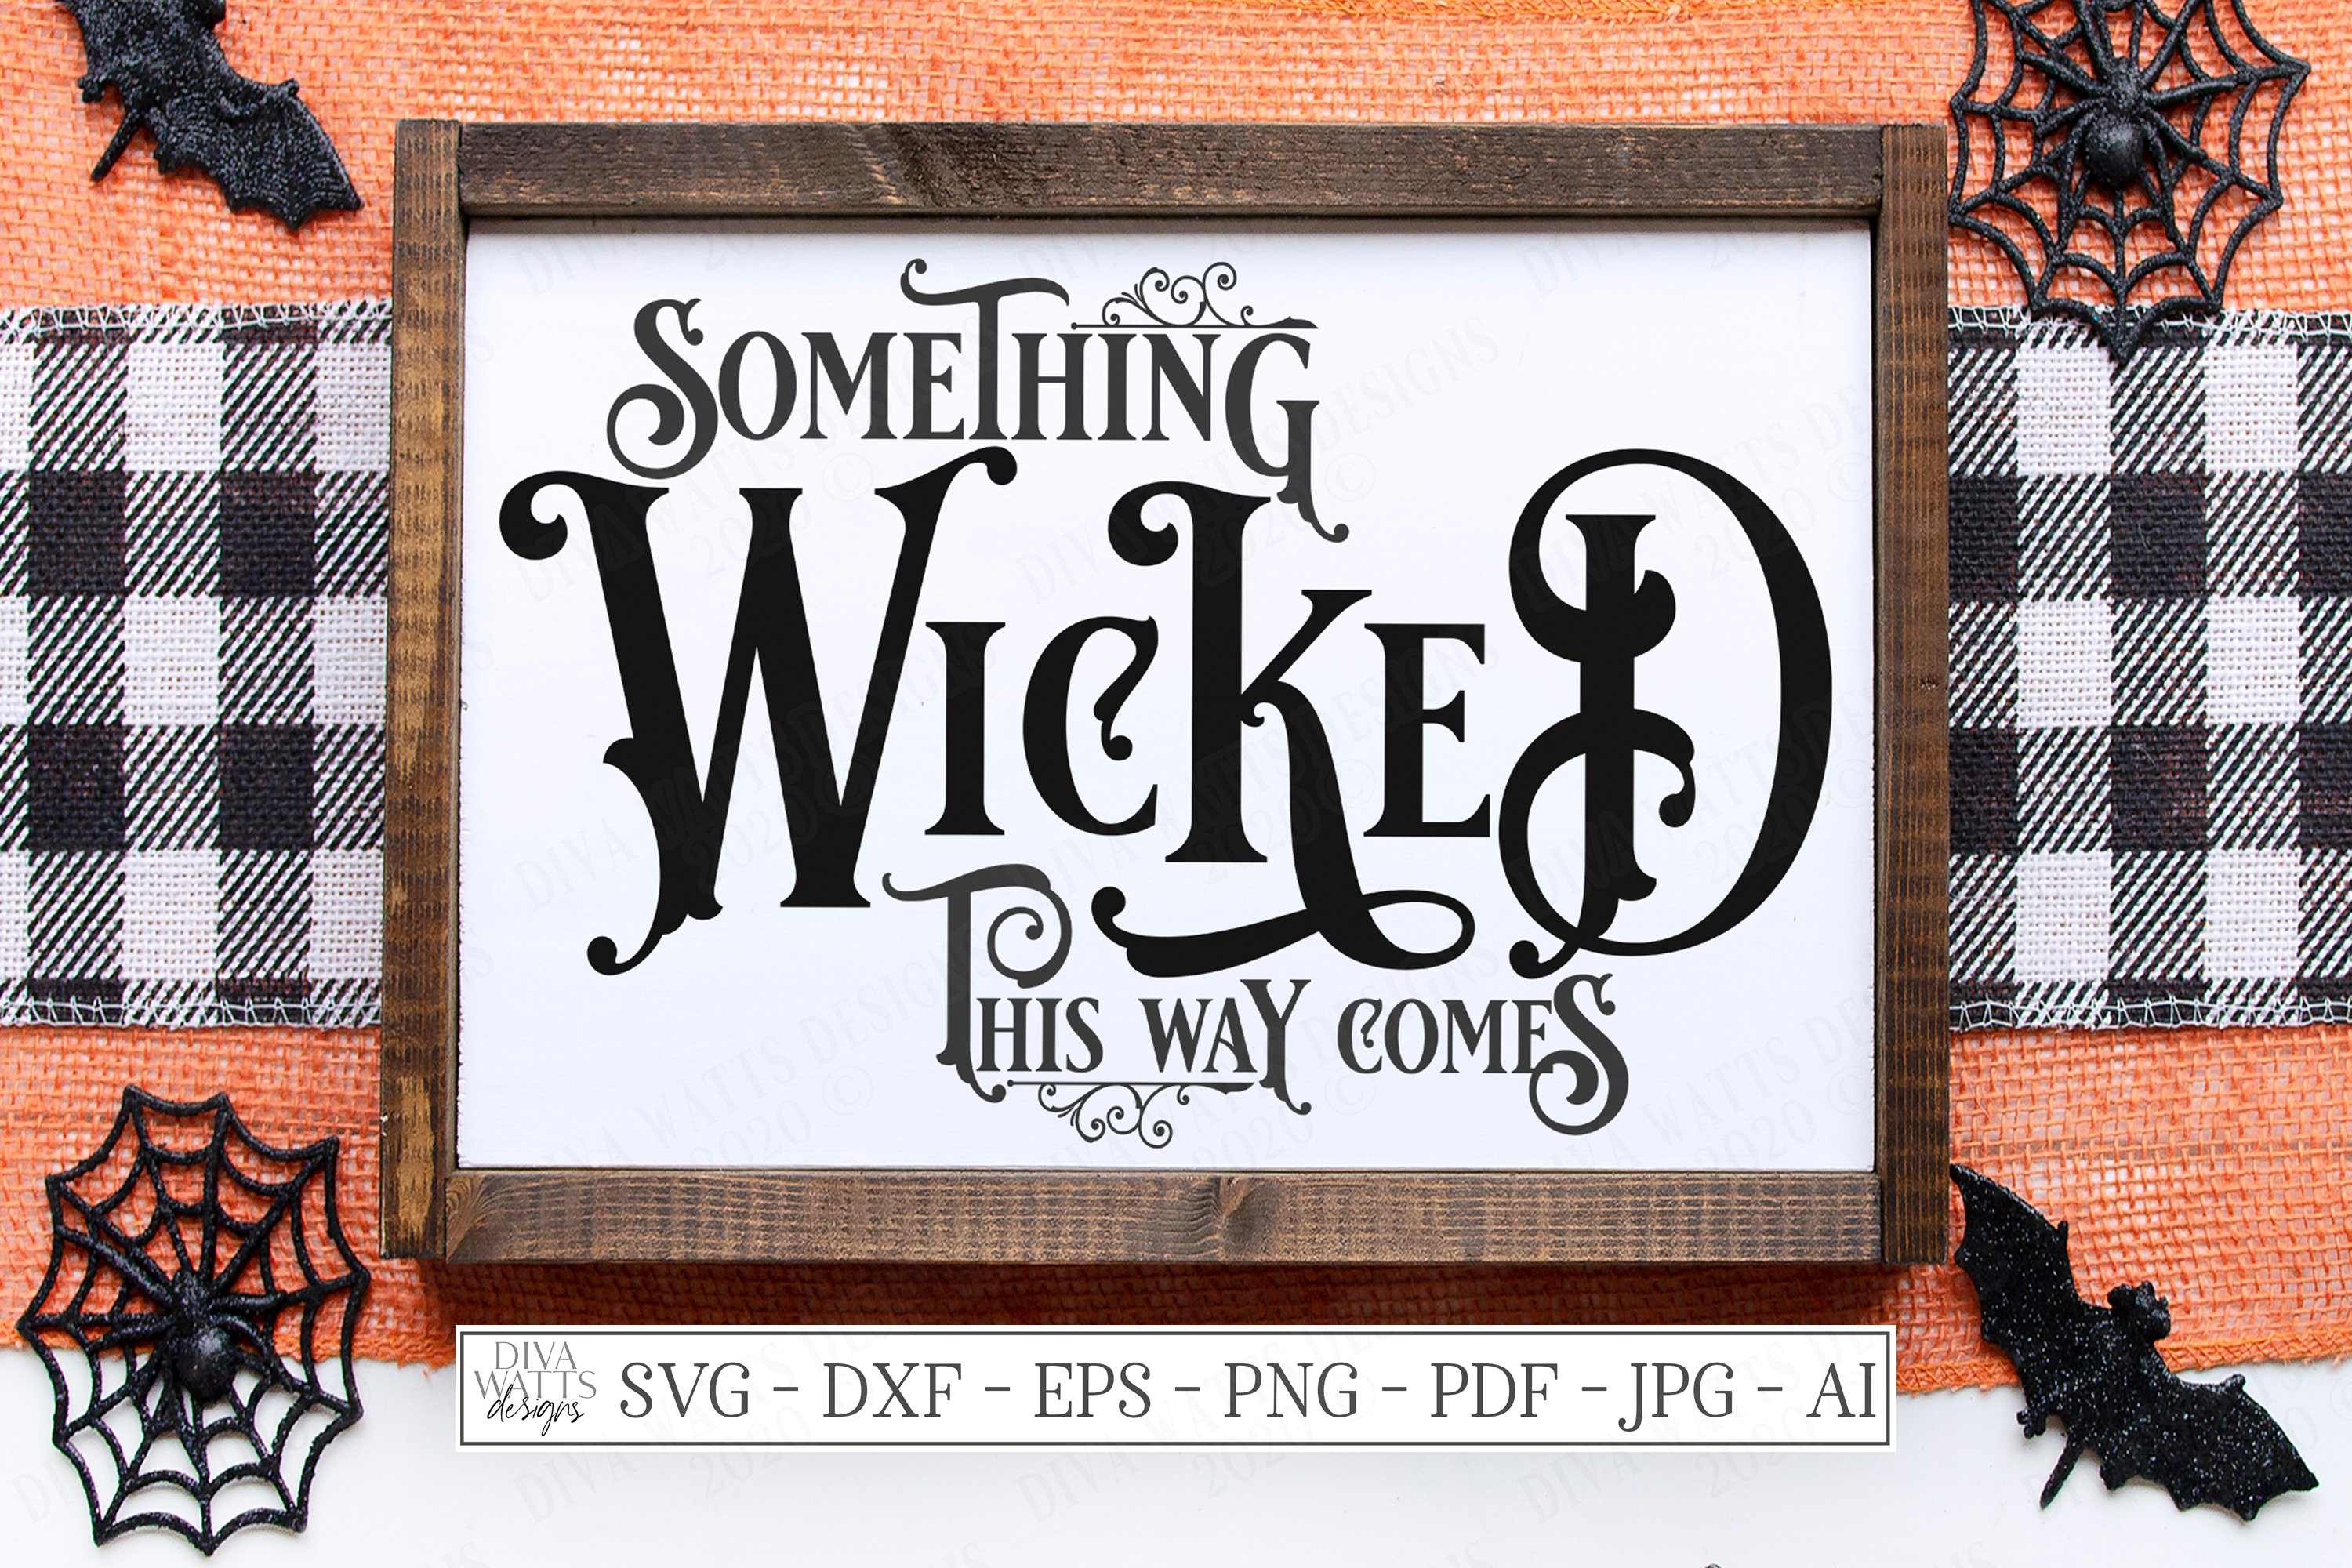 Something Wicked This Way Comes Halloween Svg Dxf Eps 519026 Svgs Design Bundles